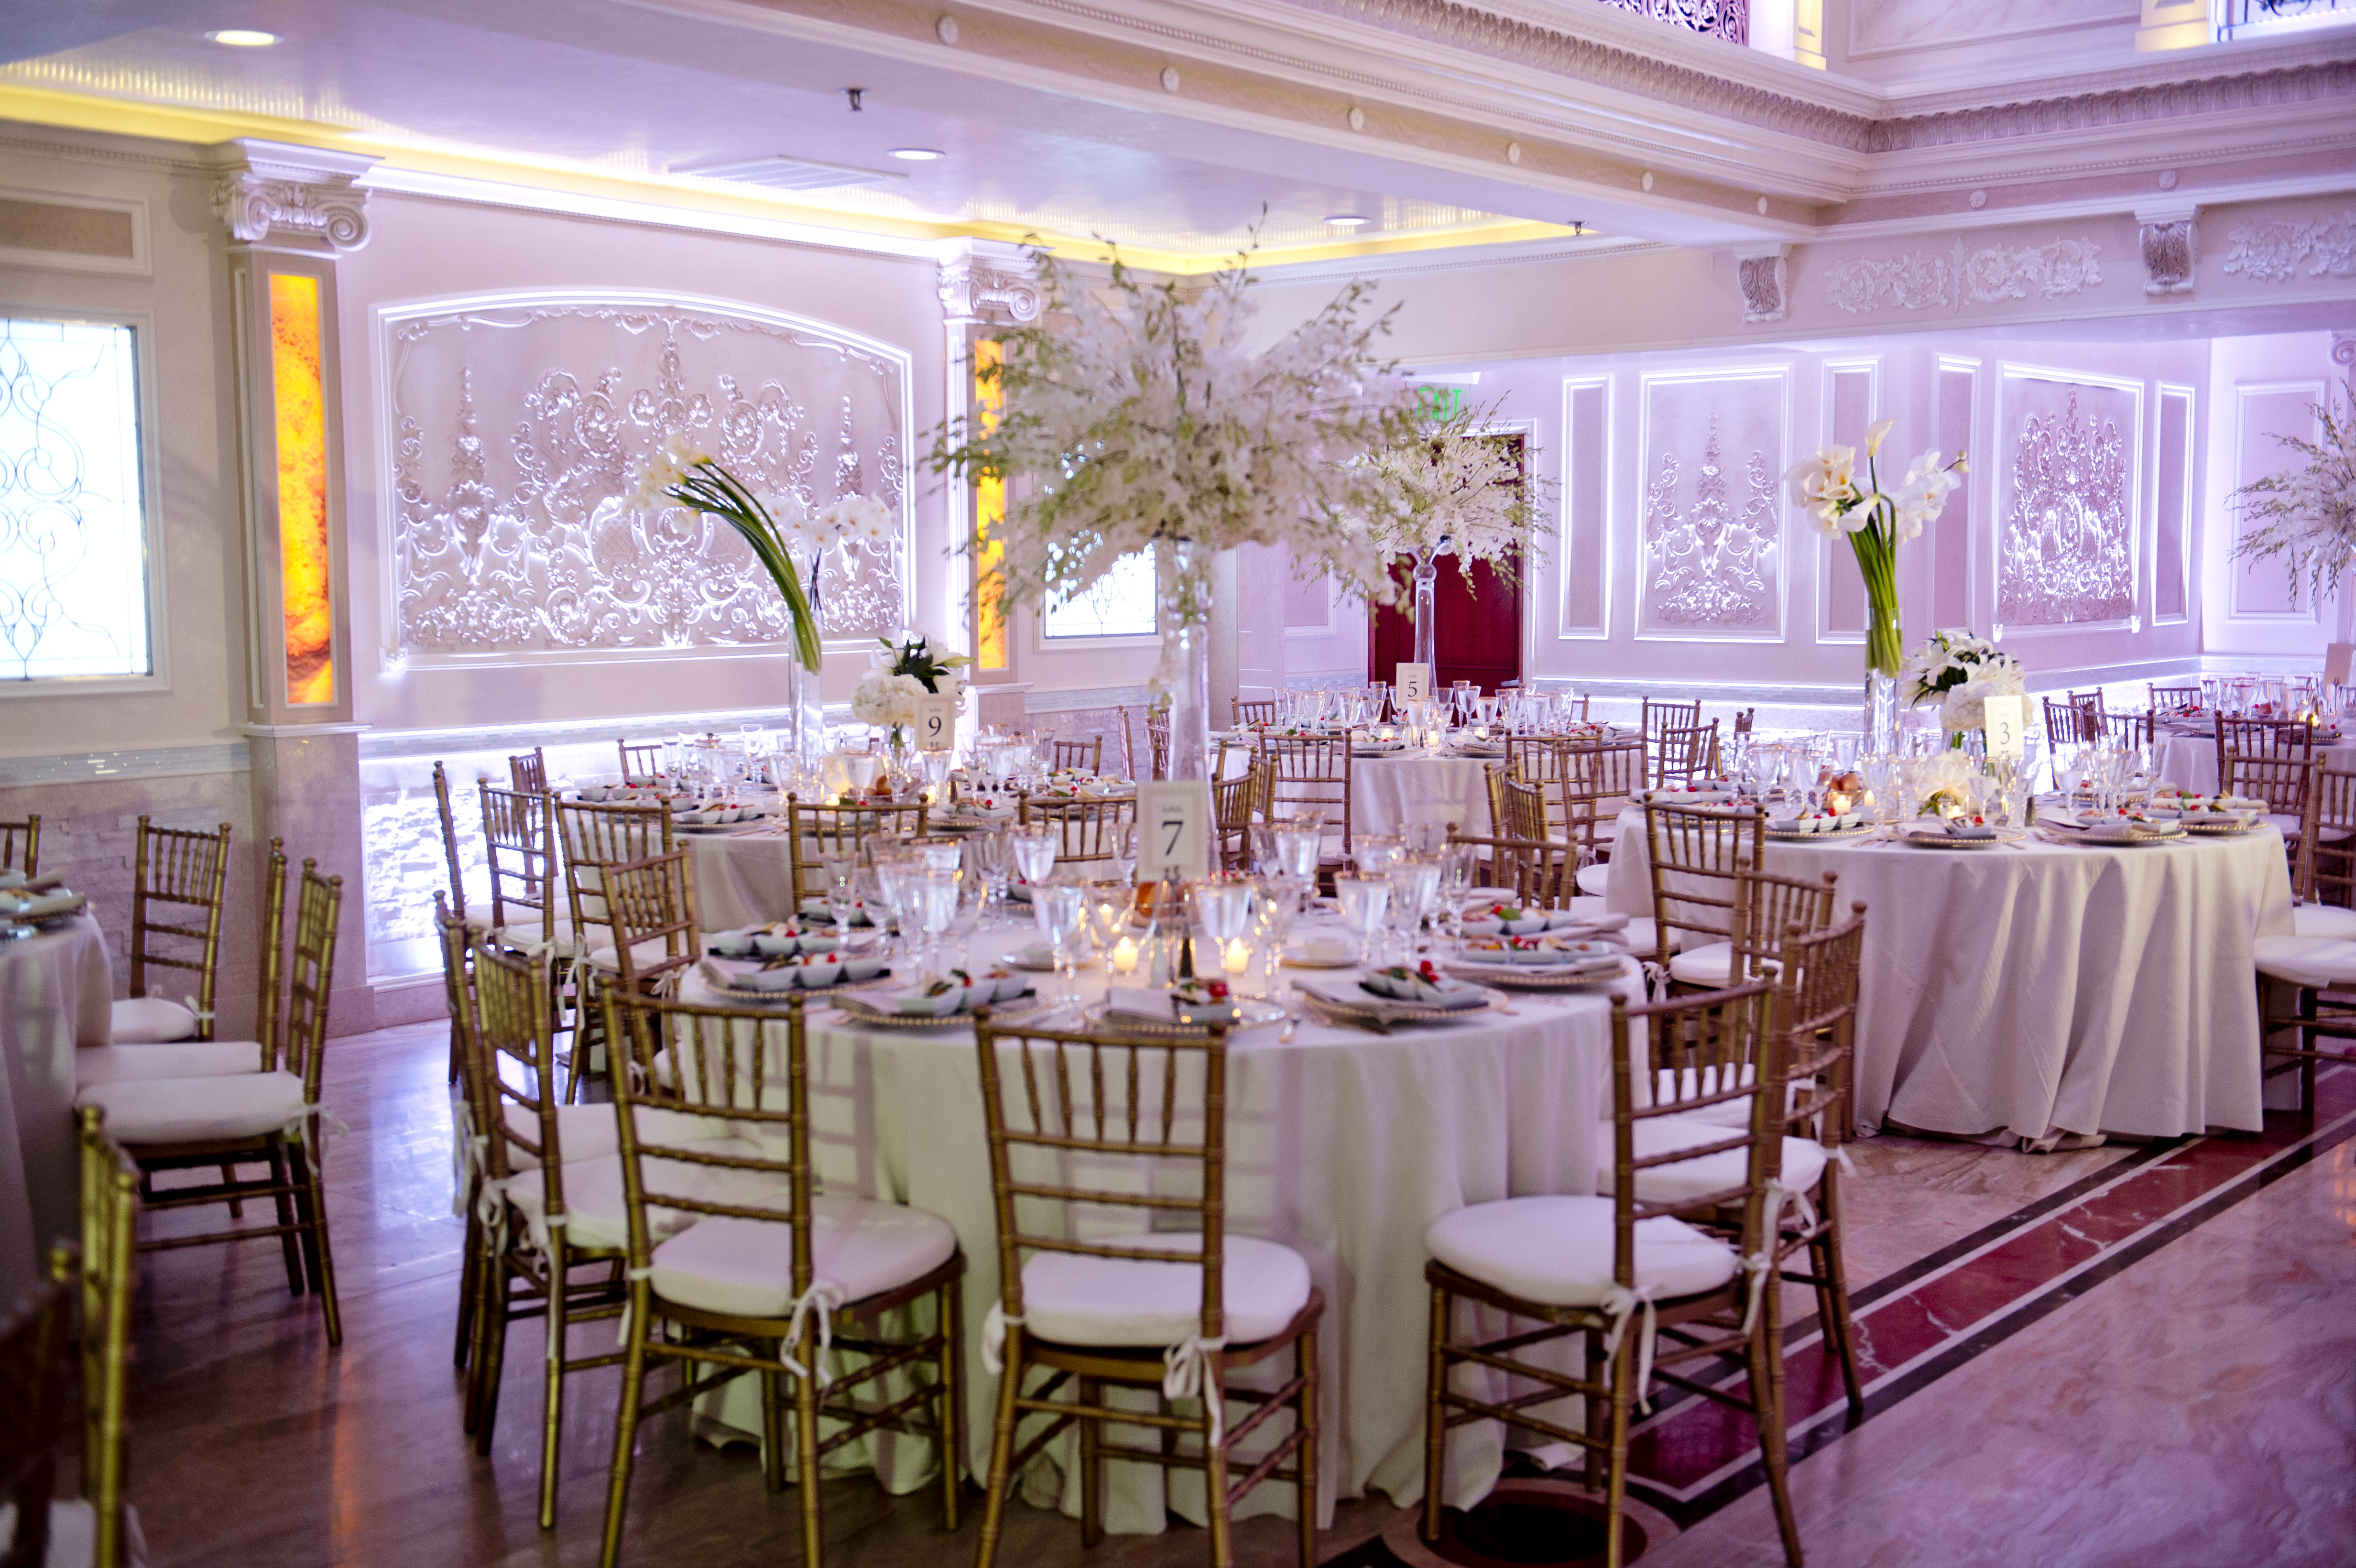 NYC wedding dulce dreams events-35